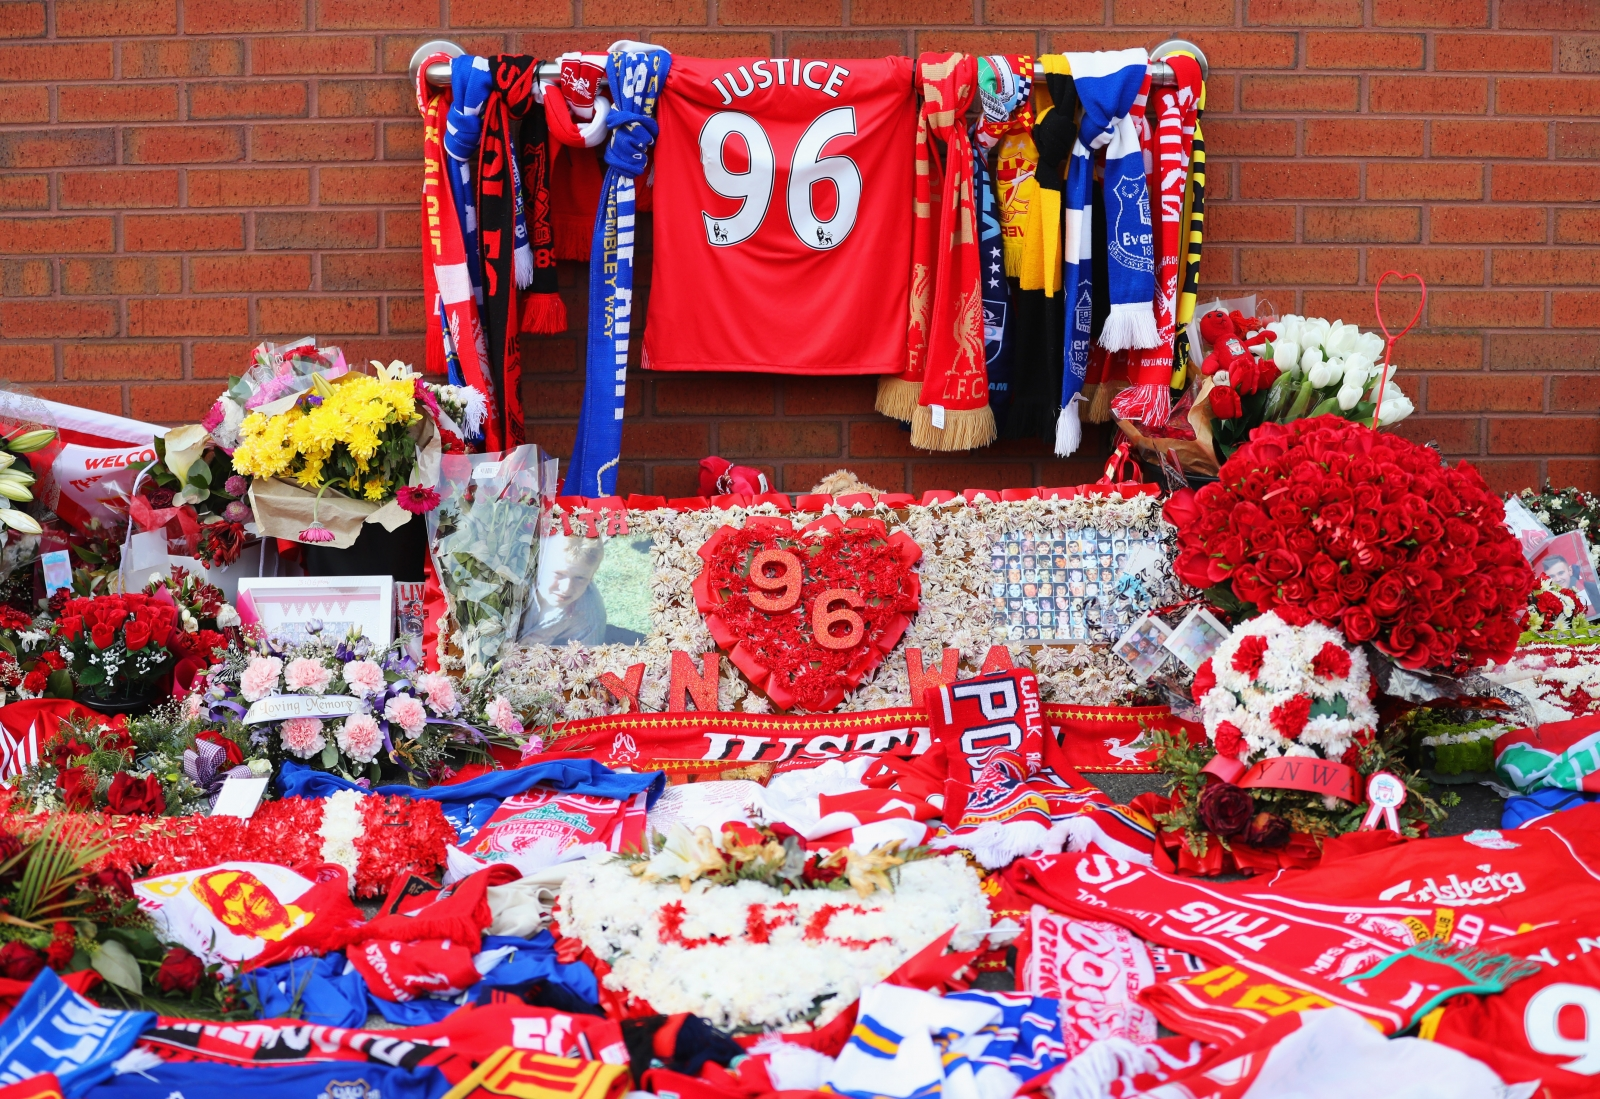 Six charged with criminal offences over Hillsborough disaster